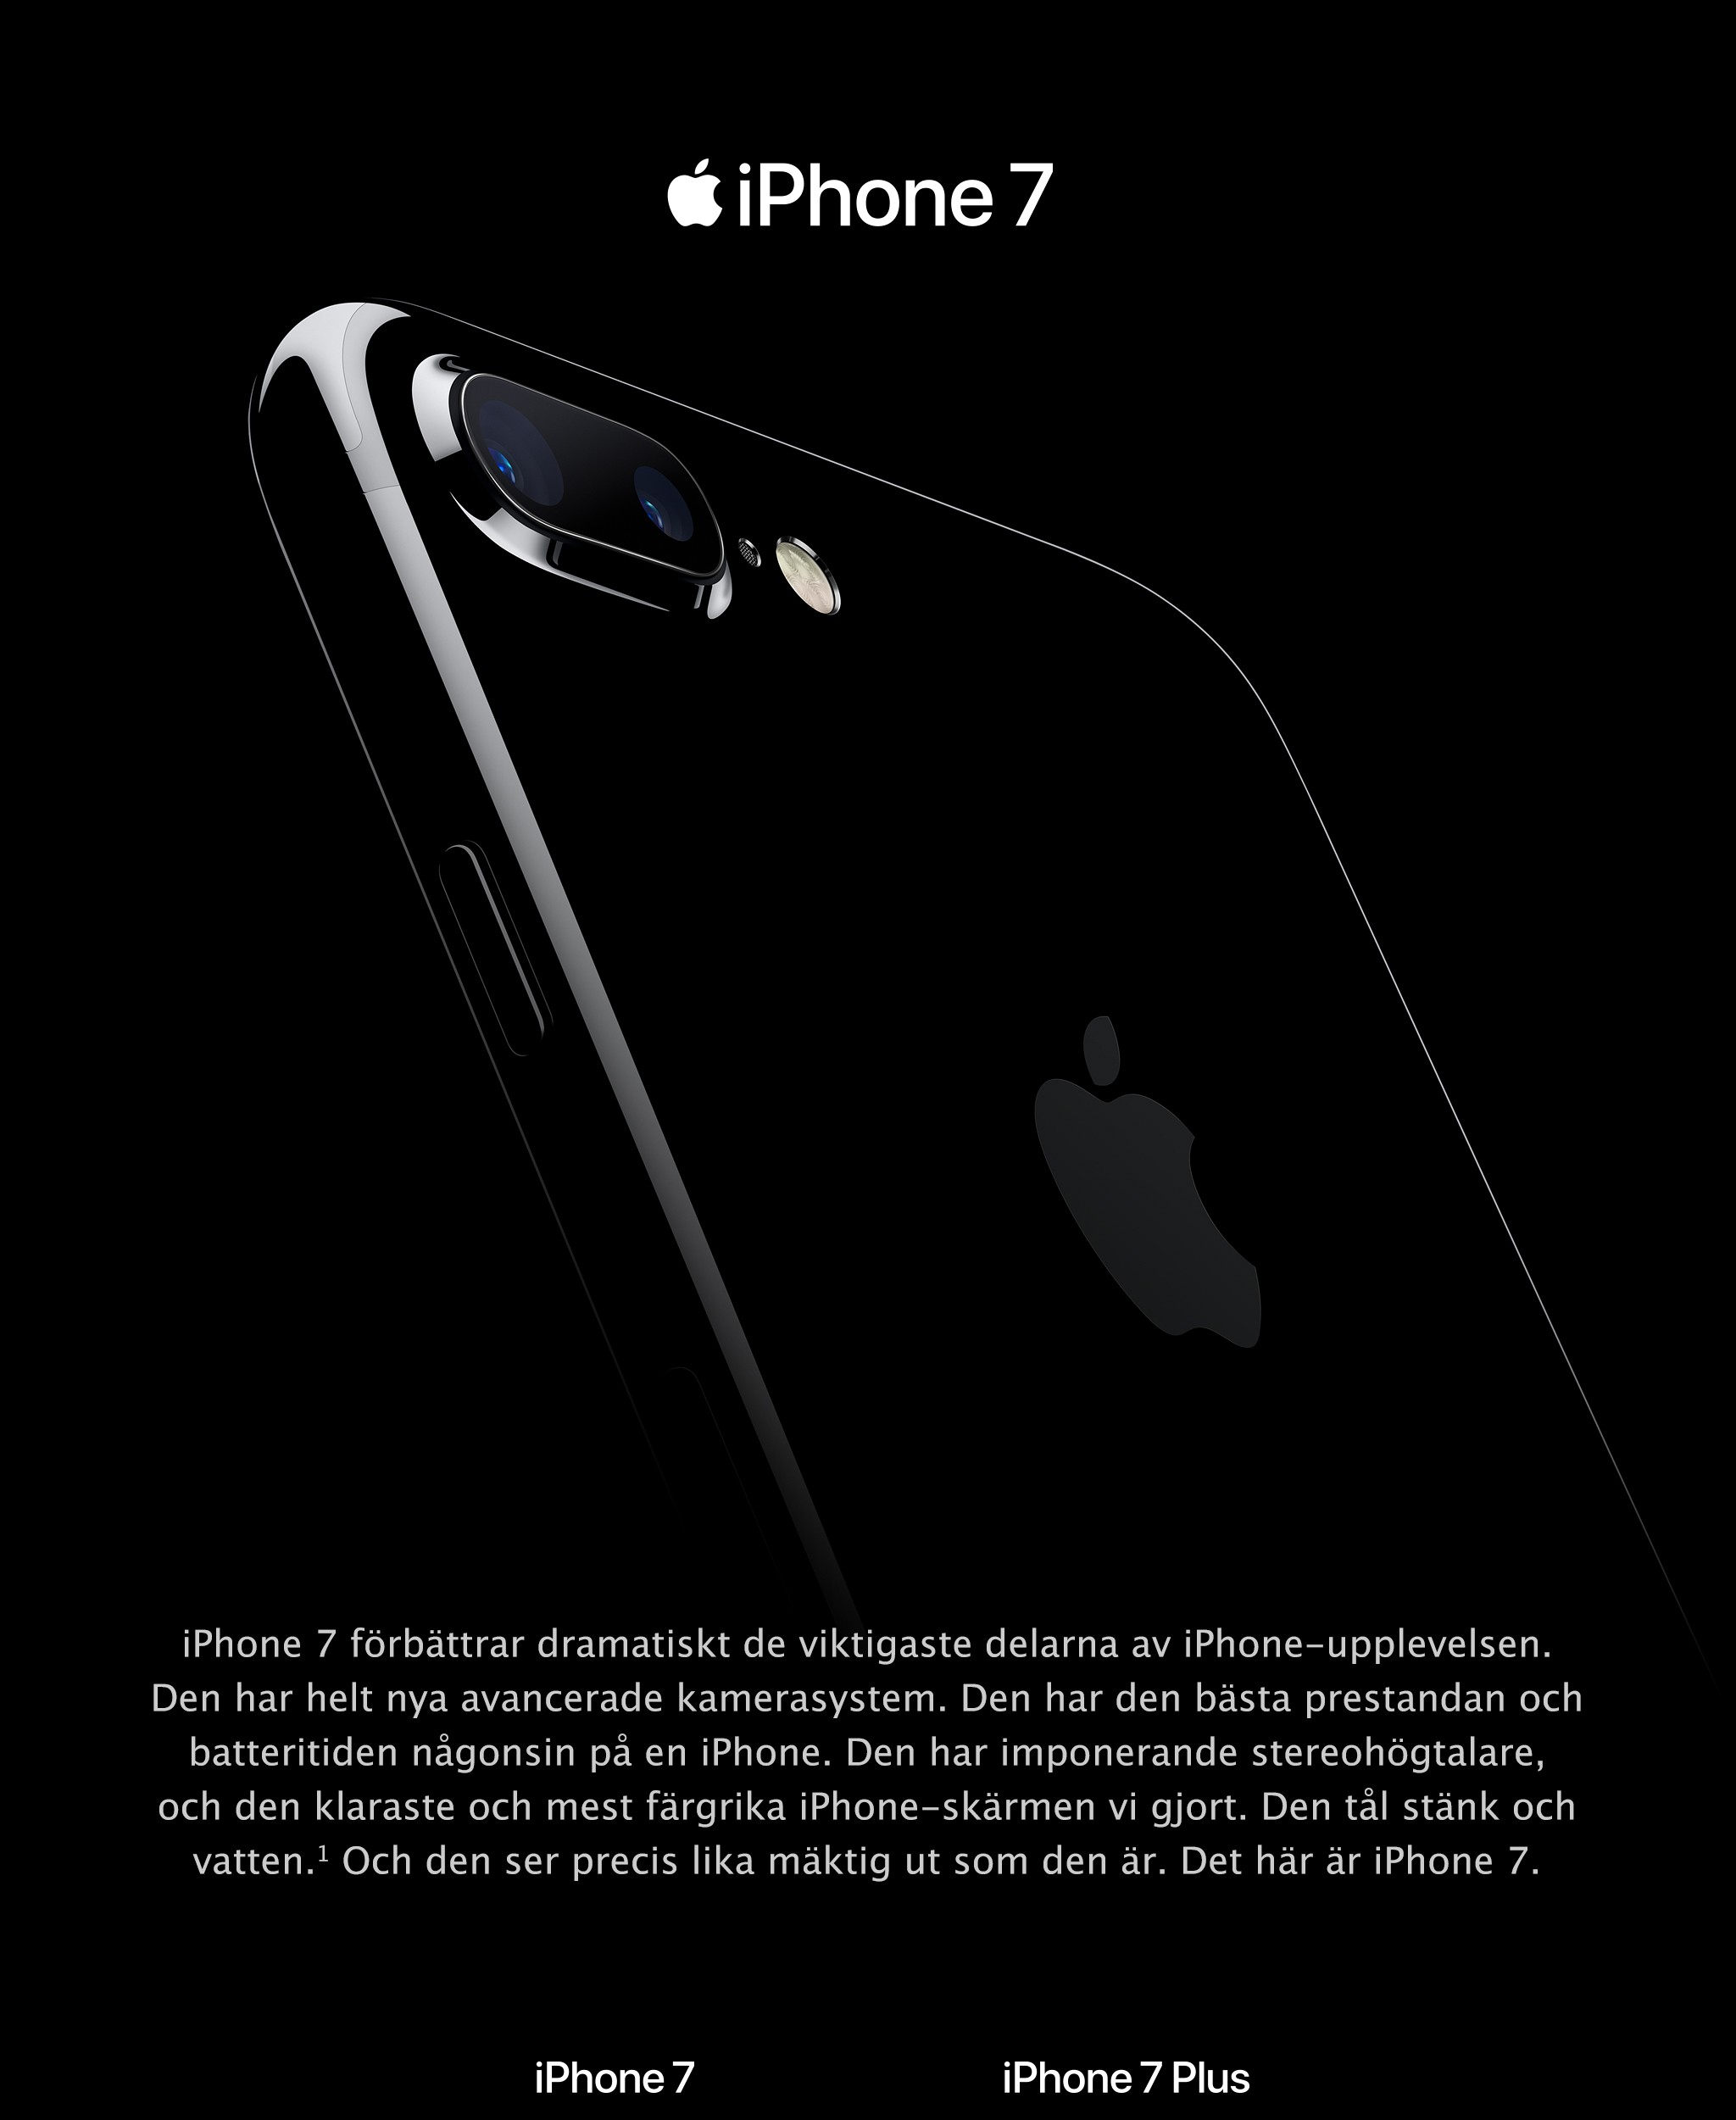 billigaste iphone 7 plus utan abonnemang